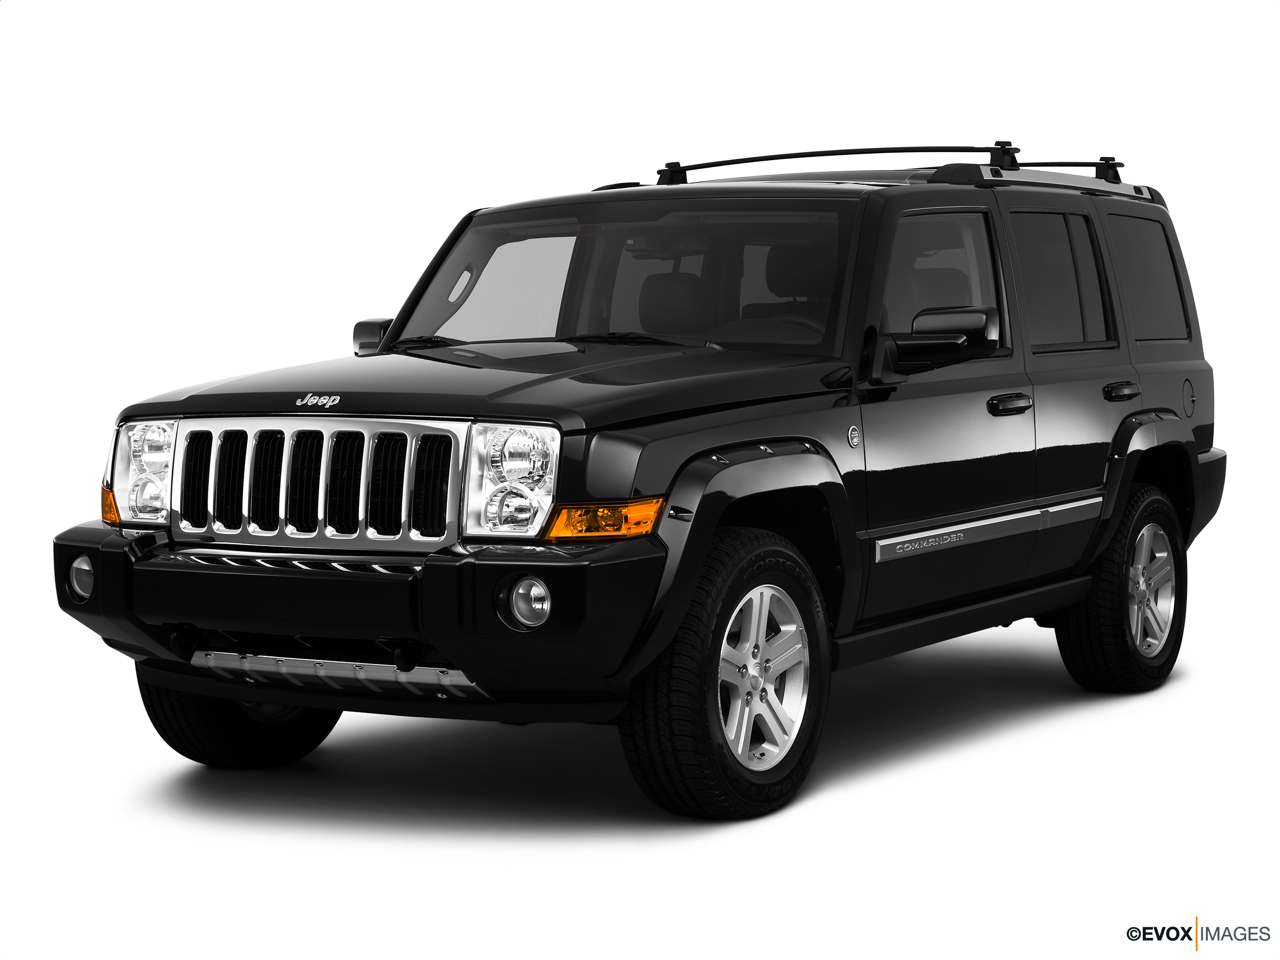 2010 Jeep Commander Limited 114 - no description